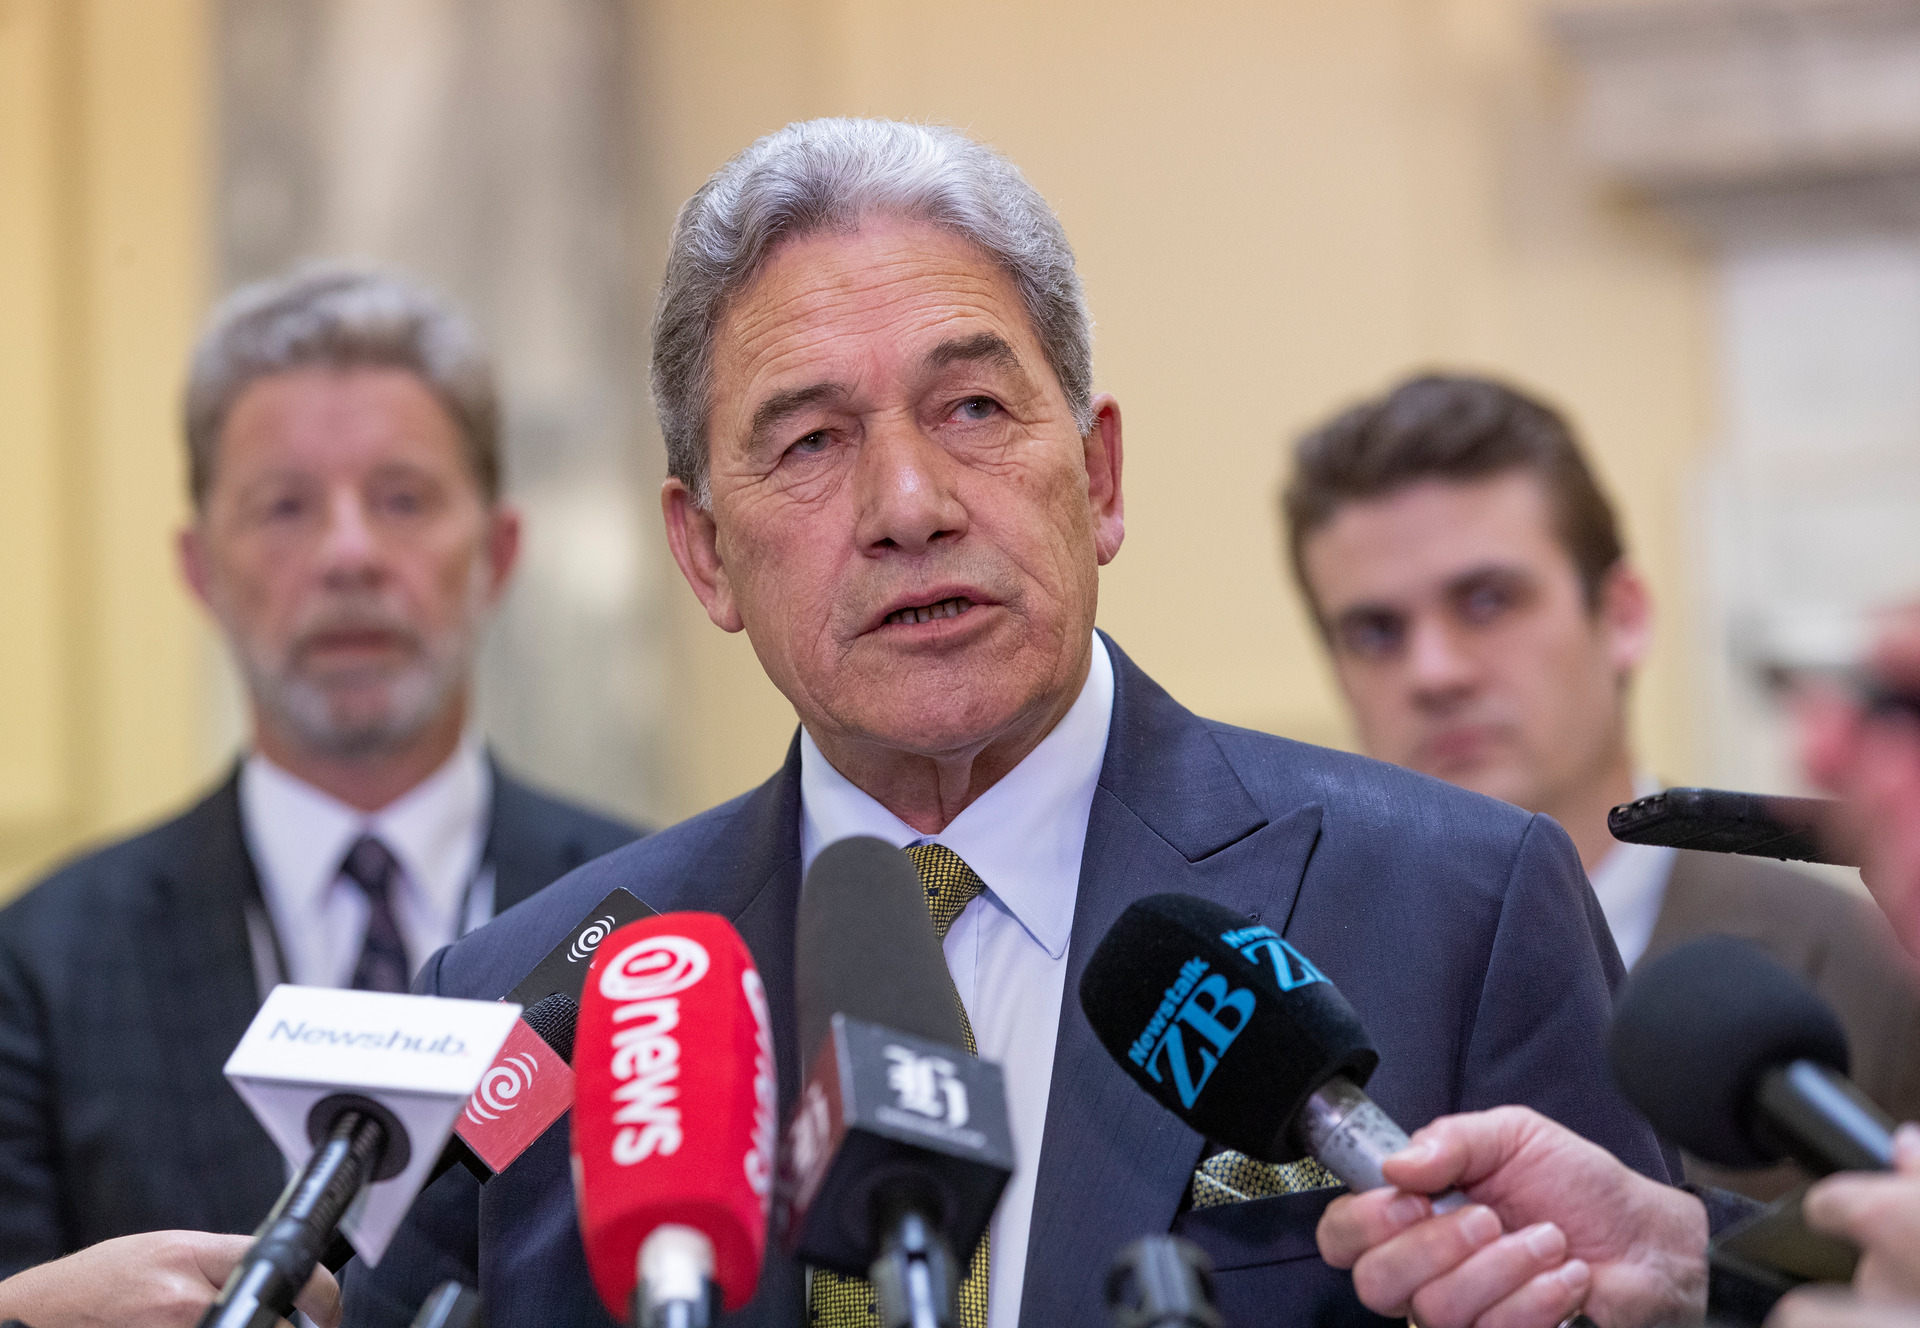 Mike Hosking: We're right to question Winston Peters